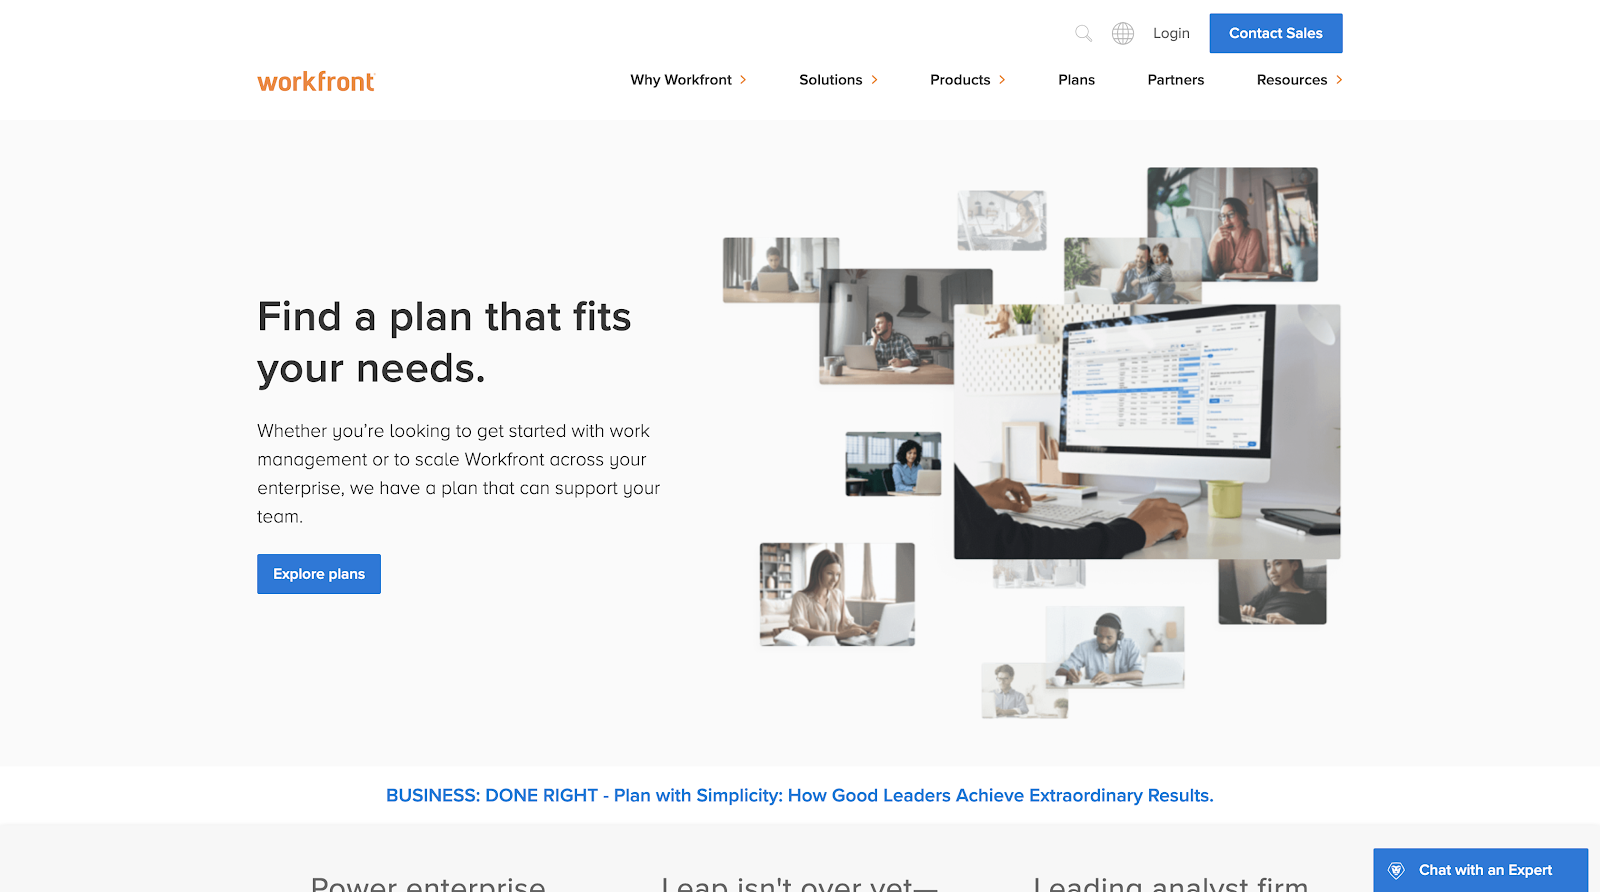 workfront - Find a plan that fits your needs